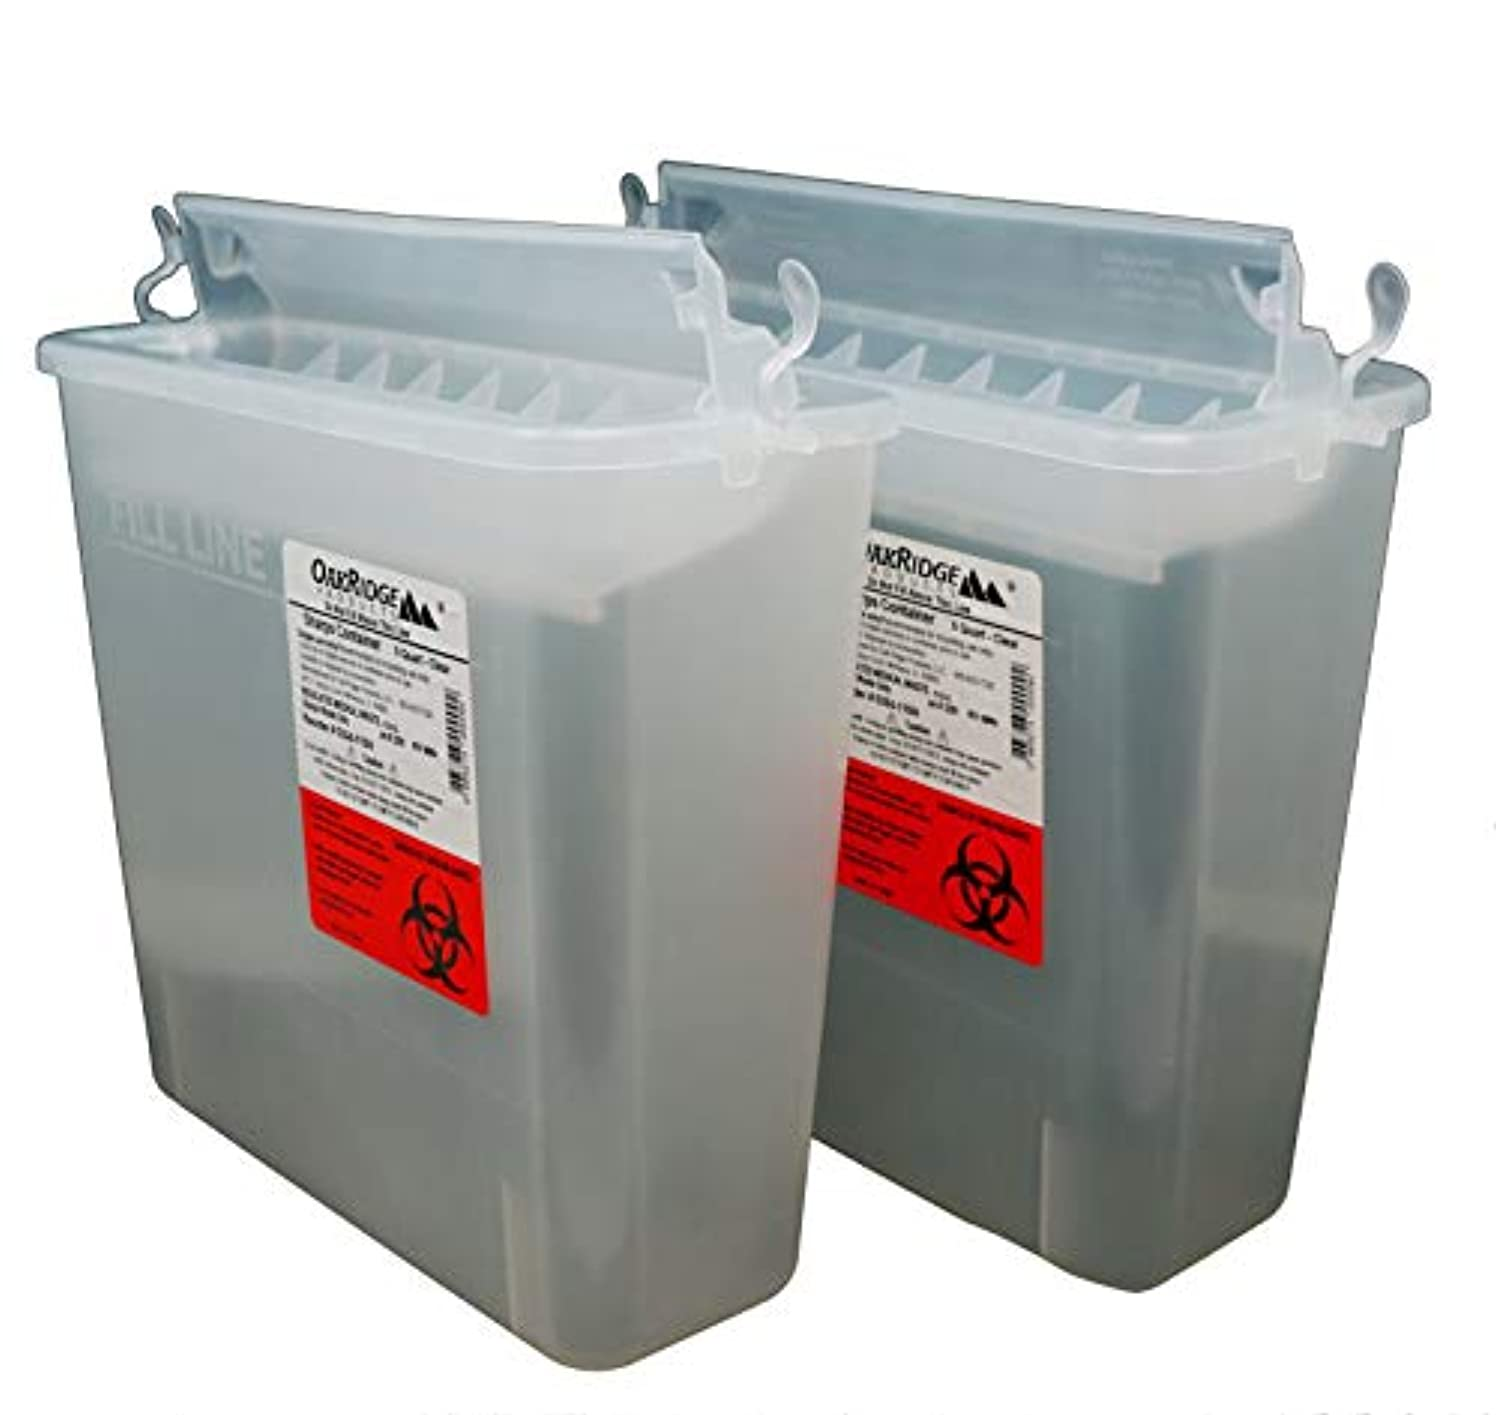 Oakridge Products Sharps Disposal Container for 5 Quart Size with Touchless Disposal (Pack of 2)